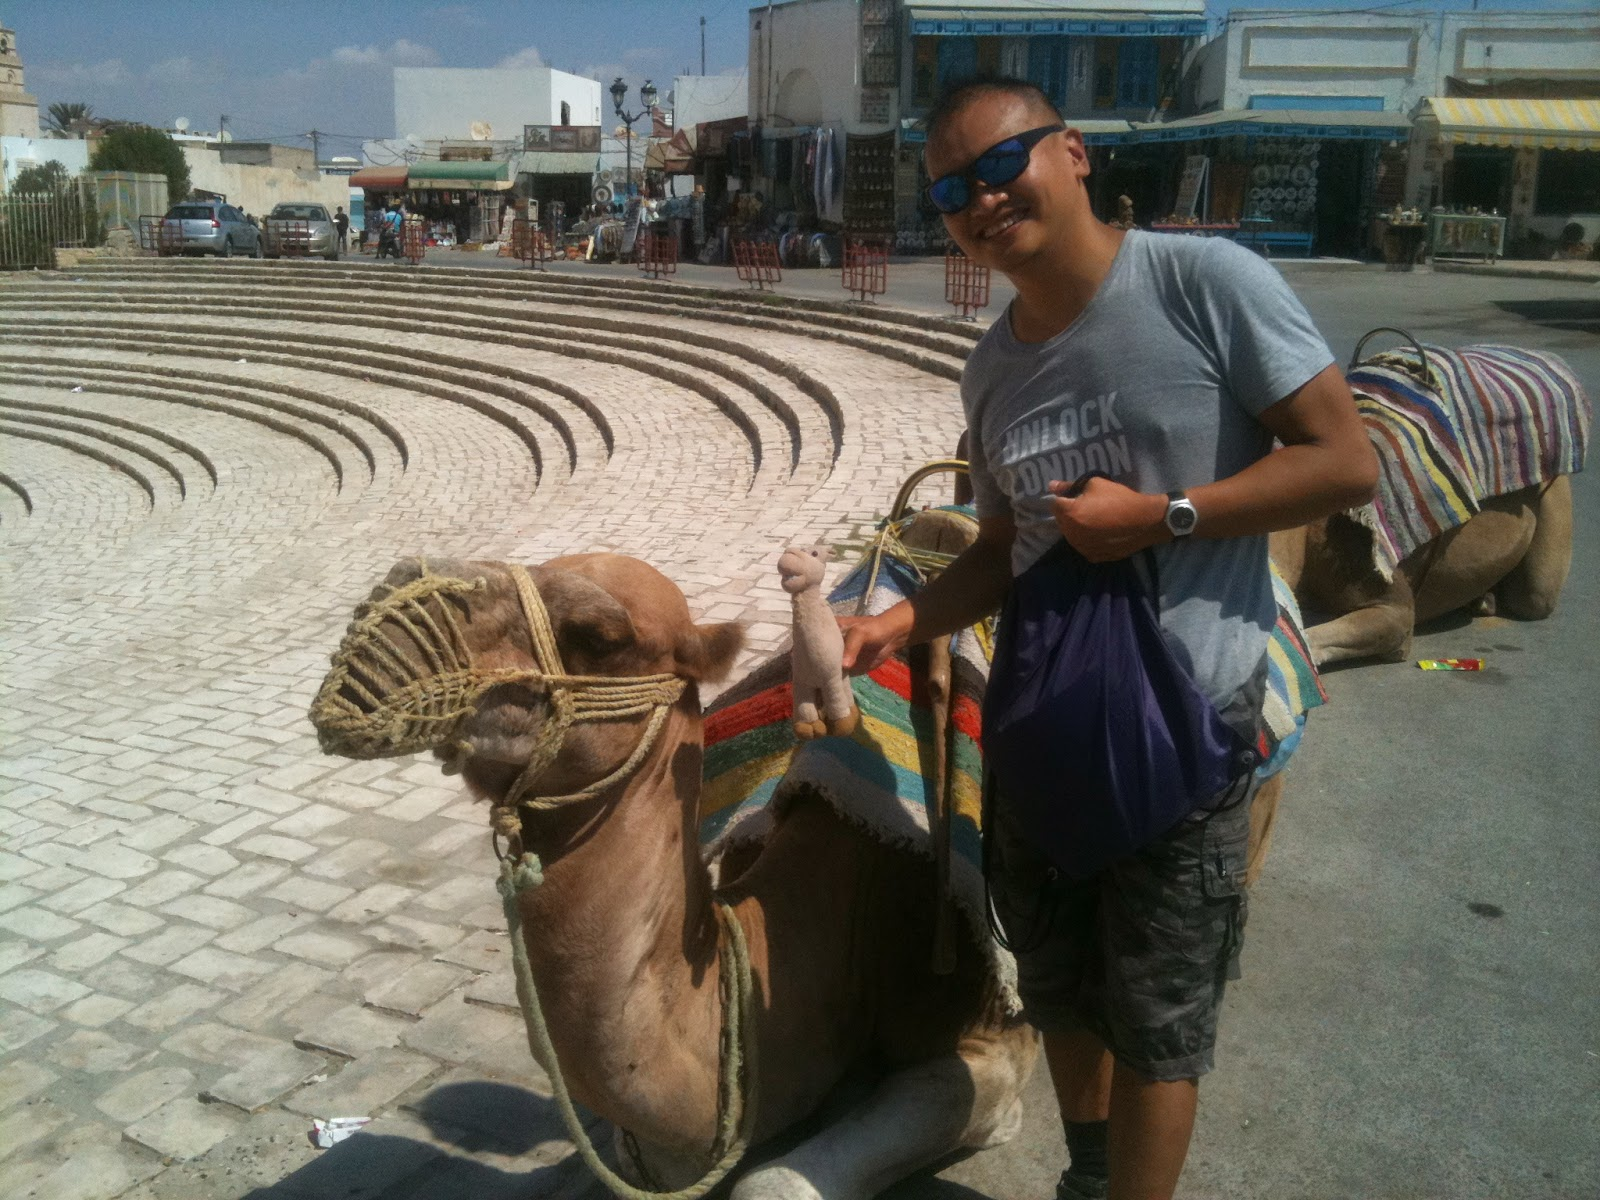 Travel, Tunisia, tourism, terrorism and tragedy.